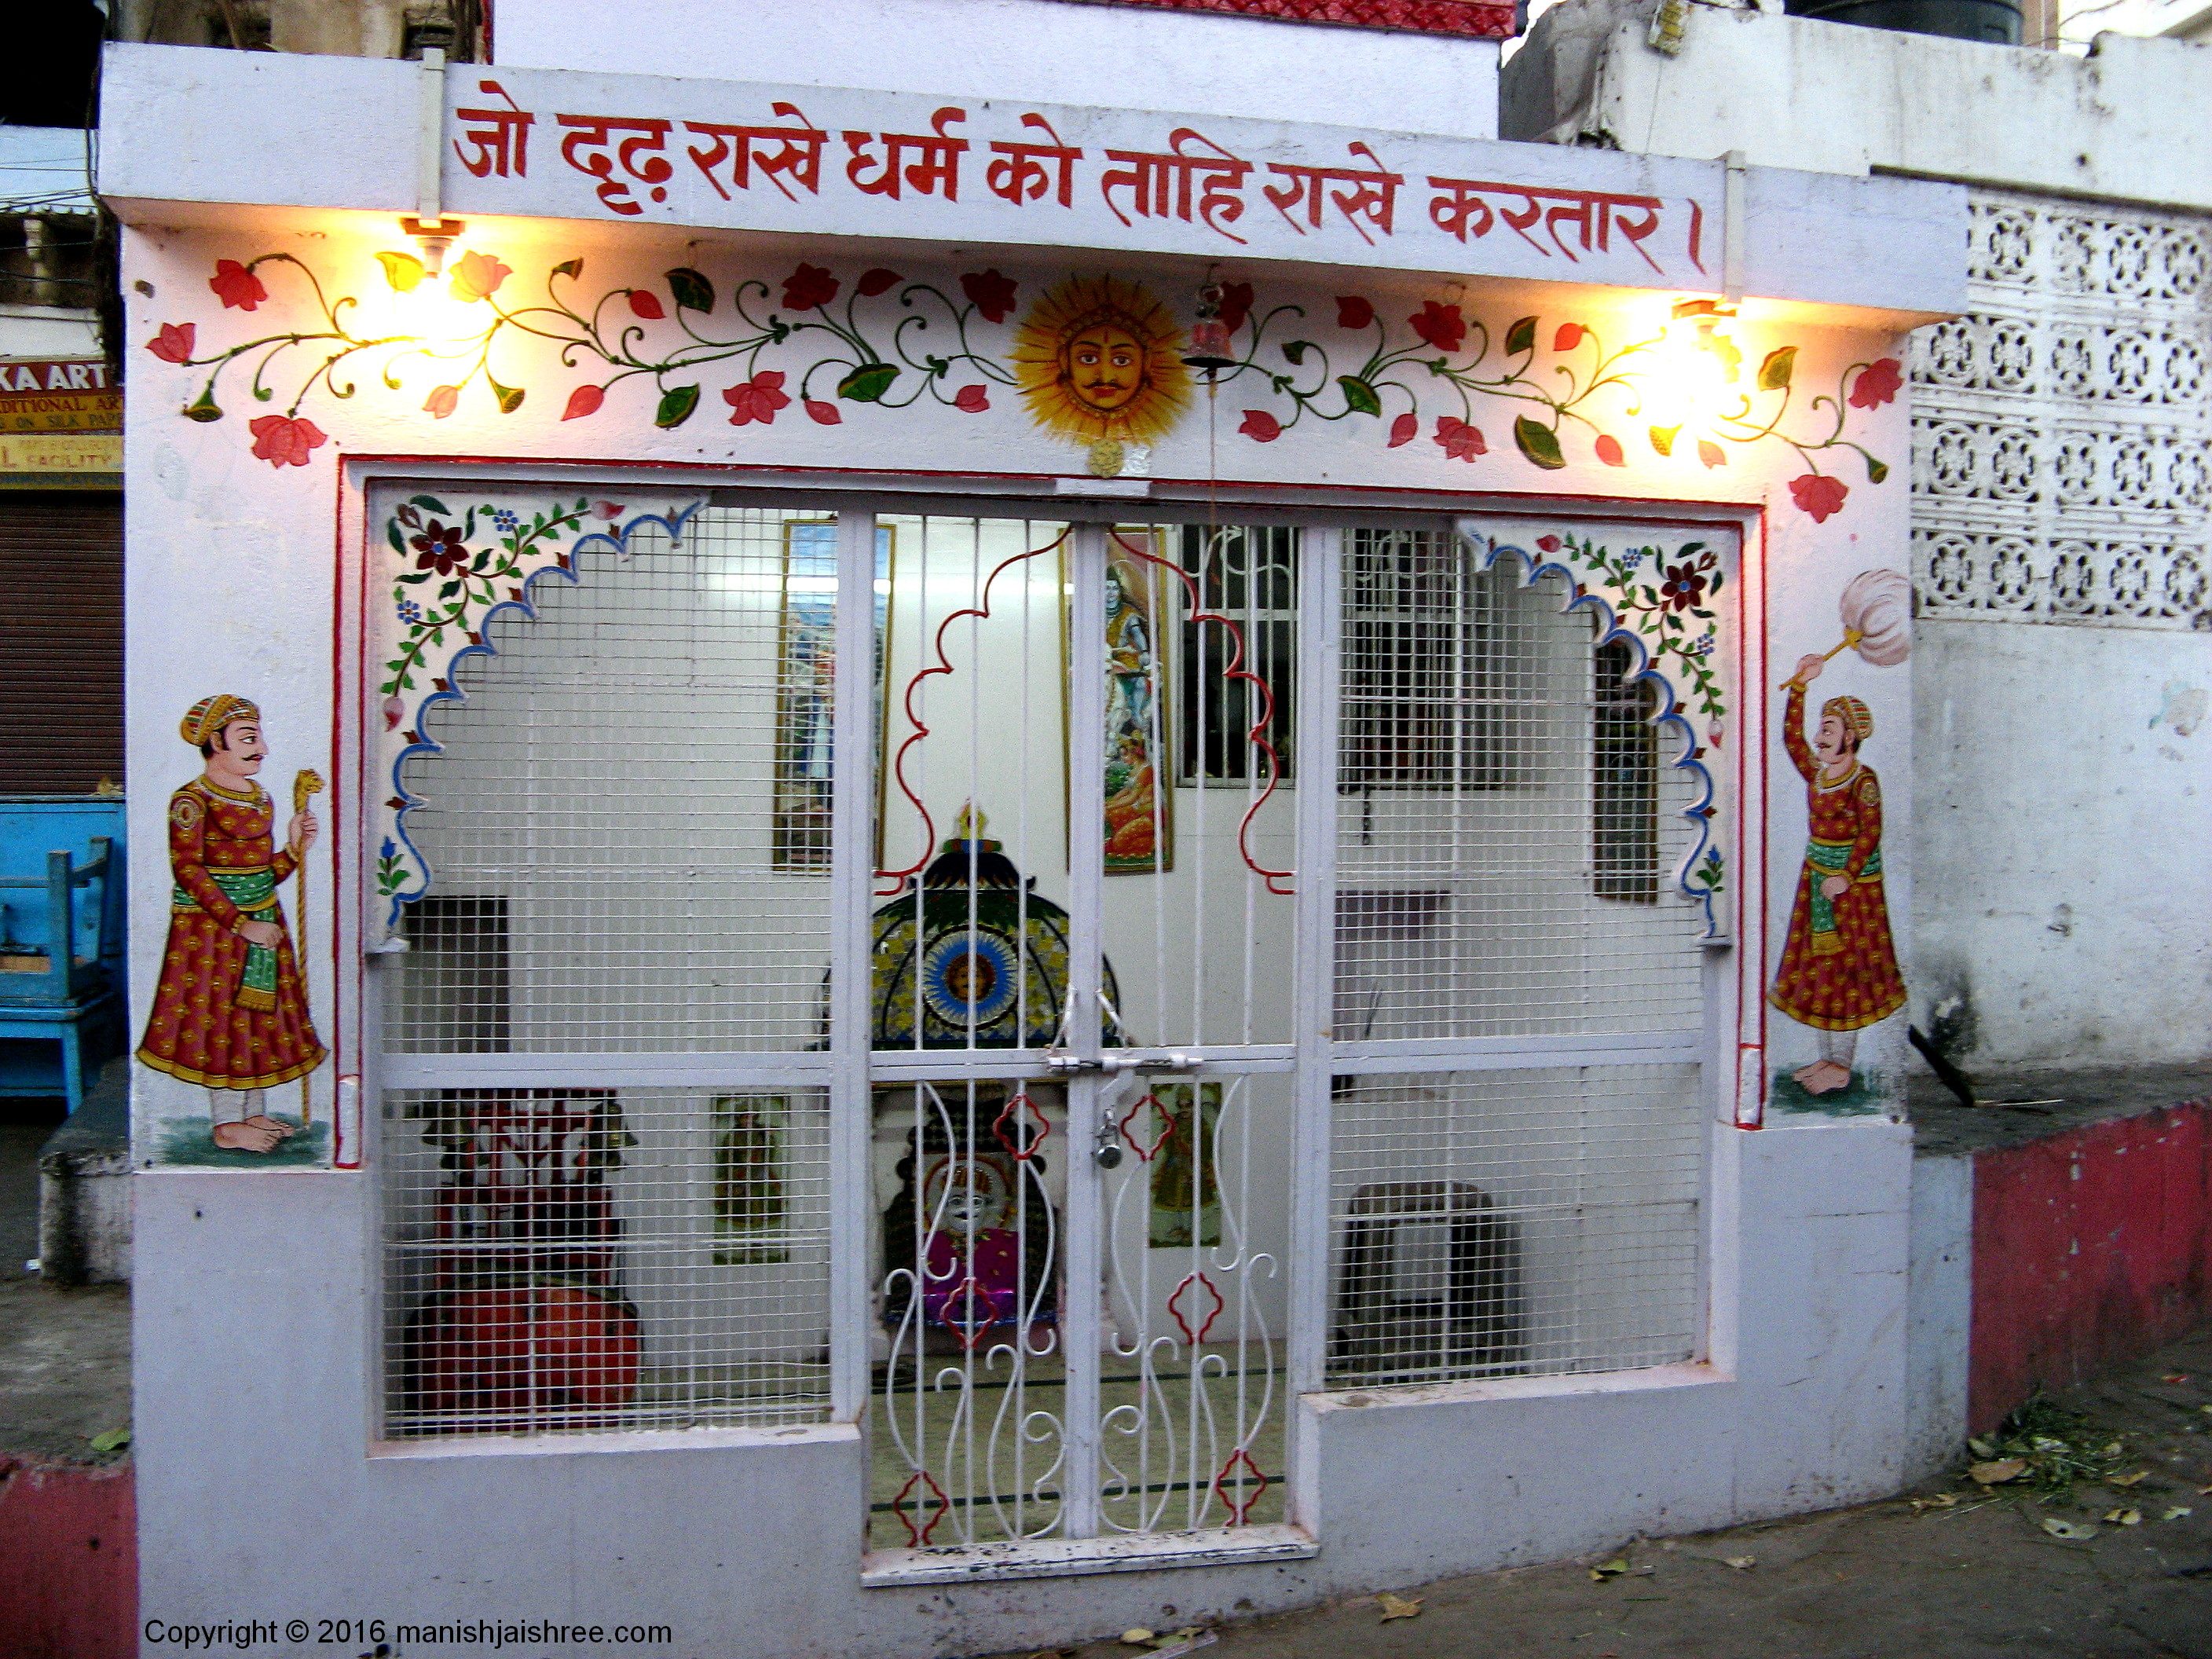 A temple of Sagasji Baoji in Udaipur